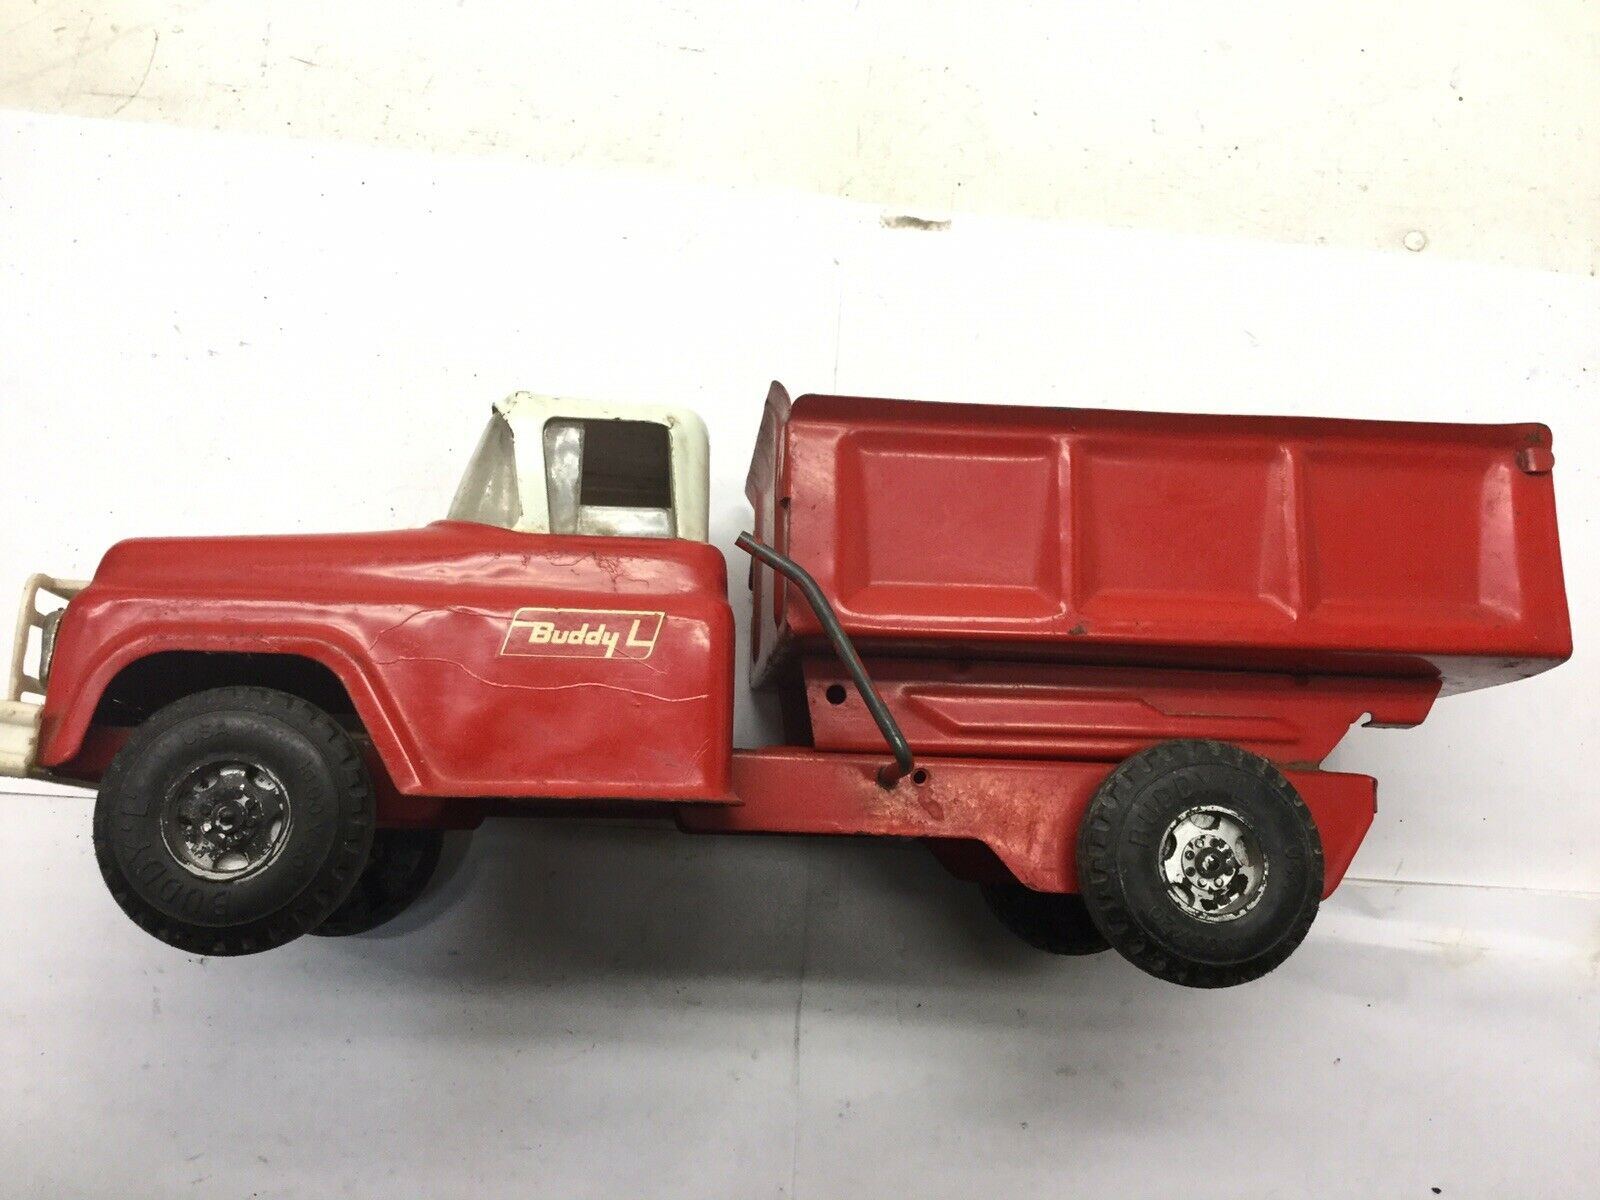 Vintage Buddy L rot Dump Truck. USED